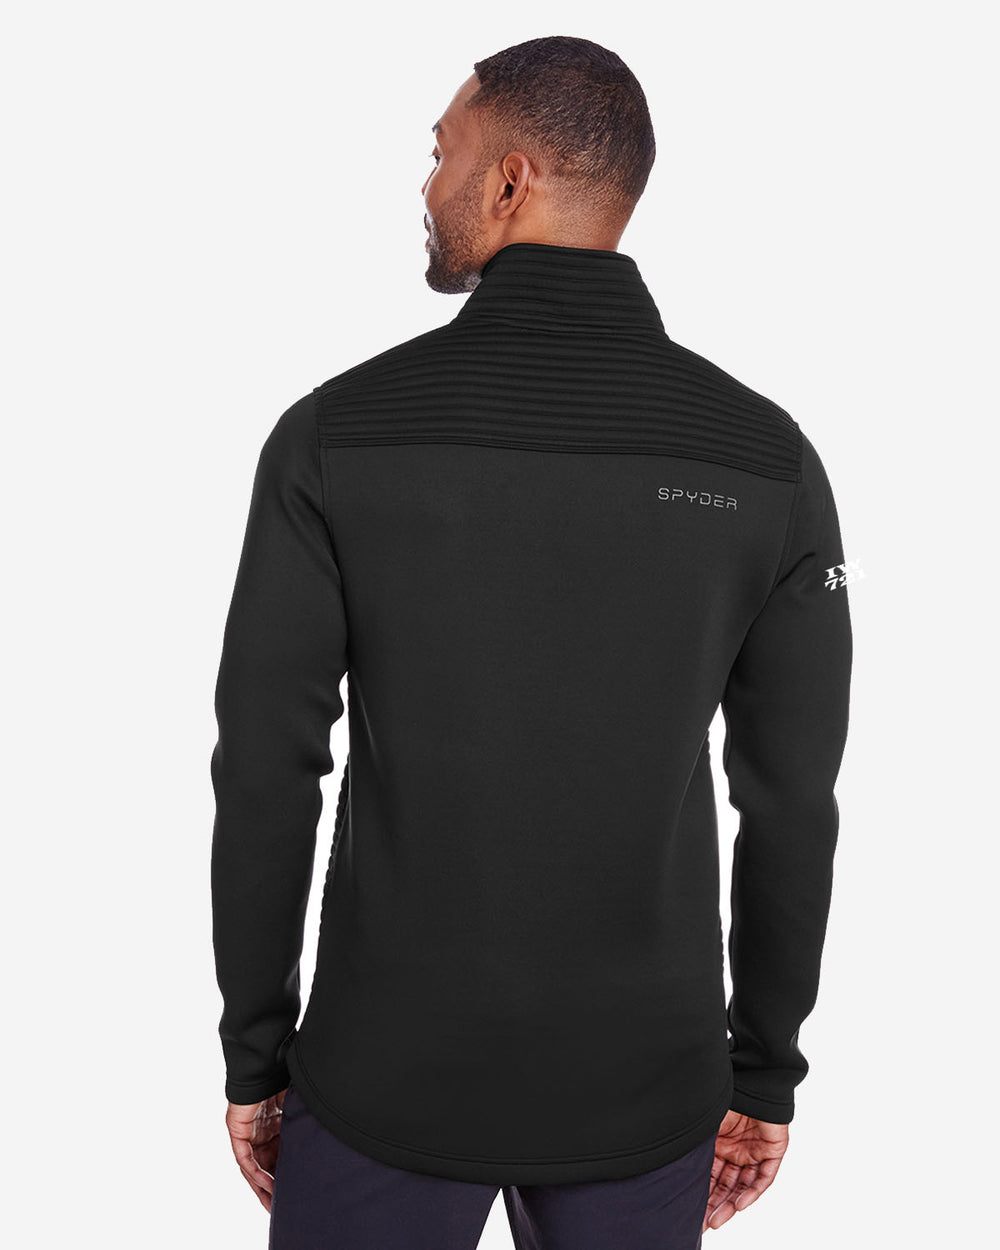 Spyder Men's Venom Full Zip Jacket